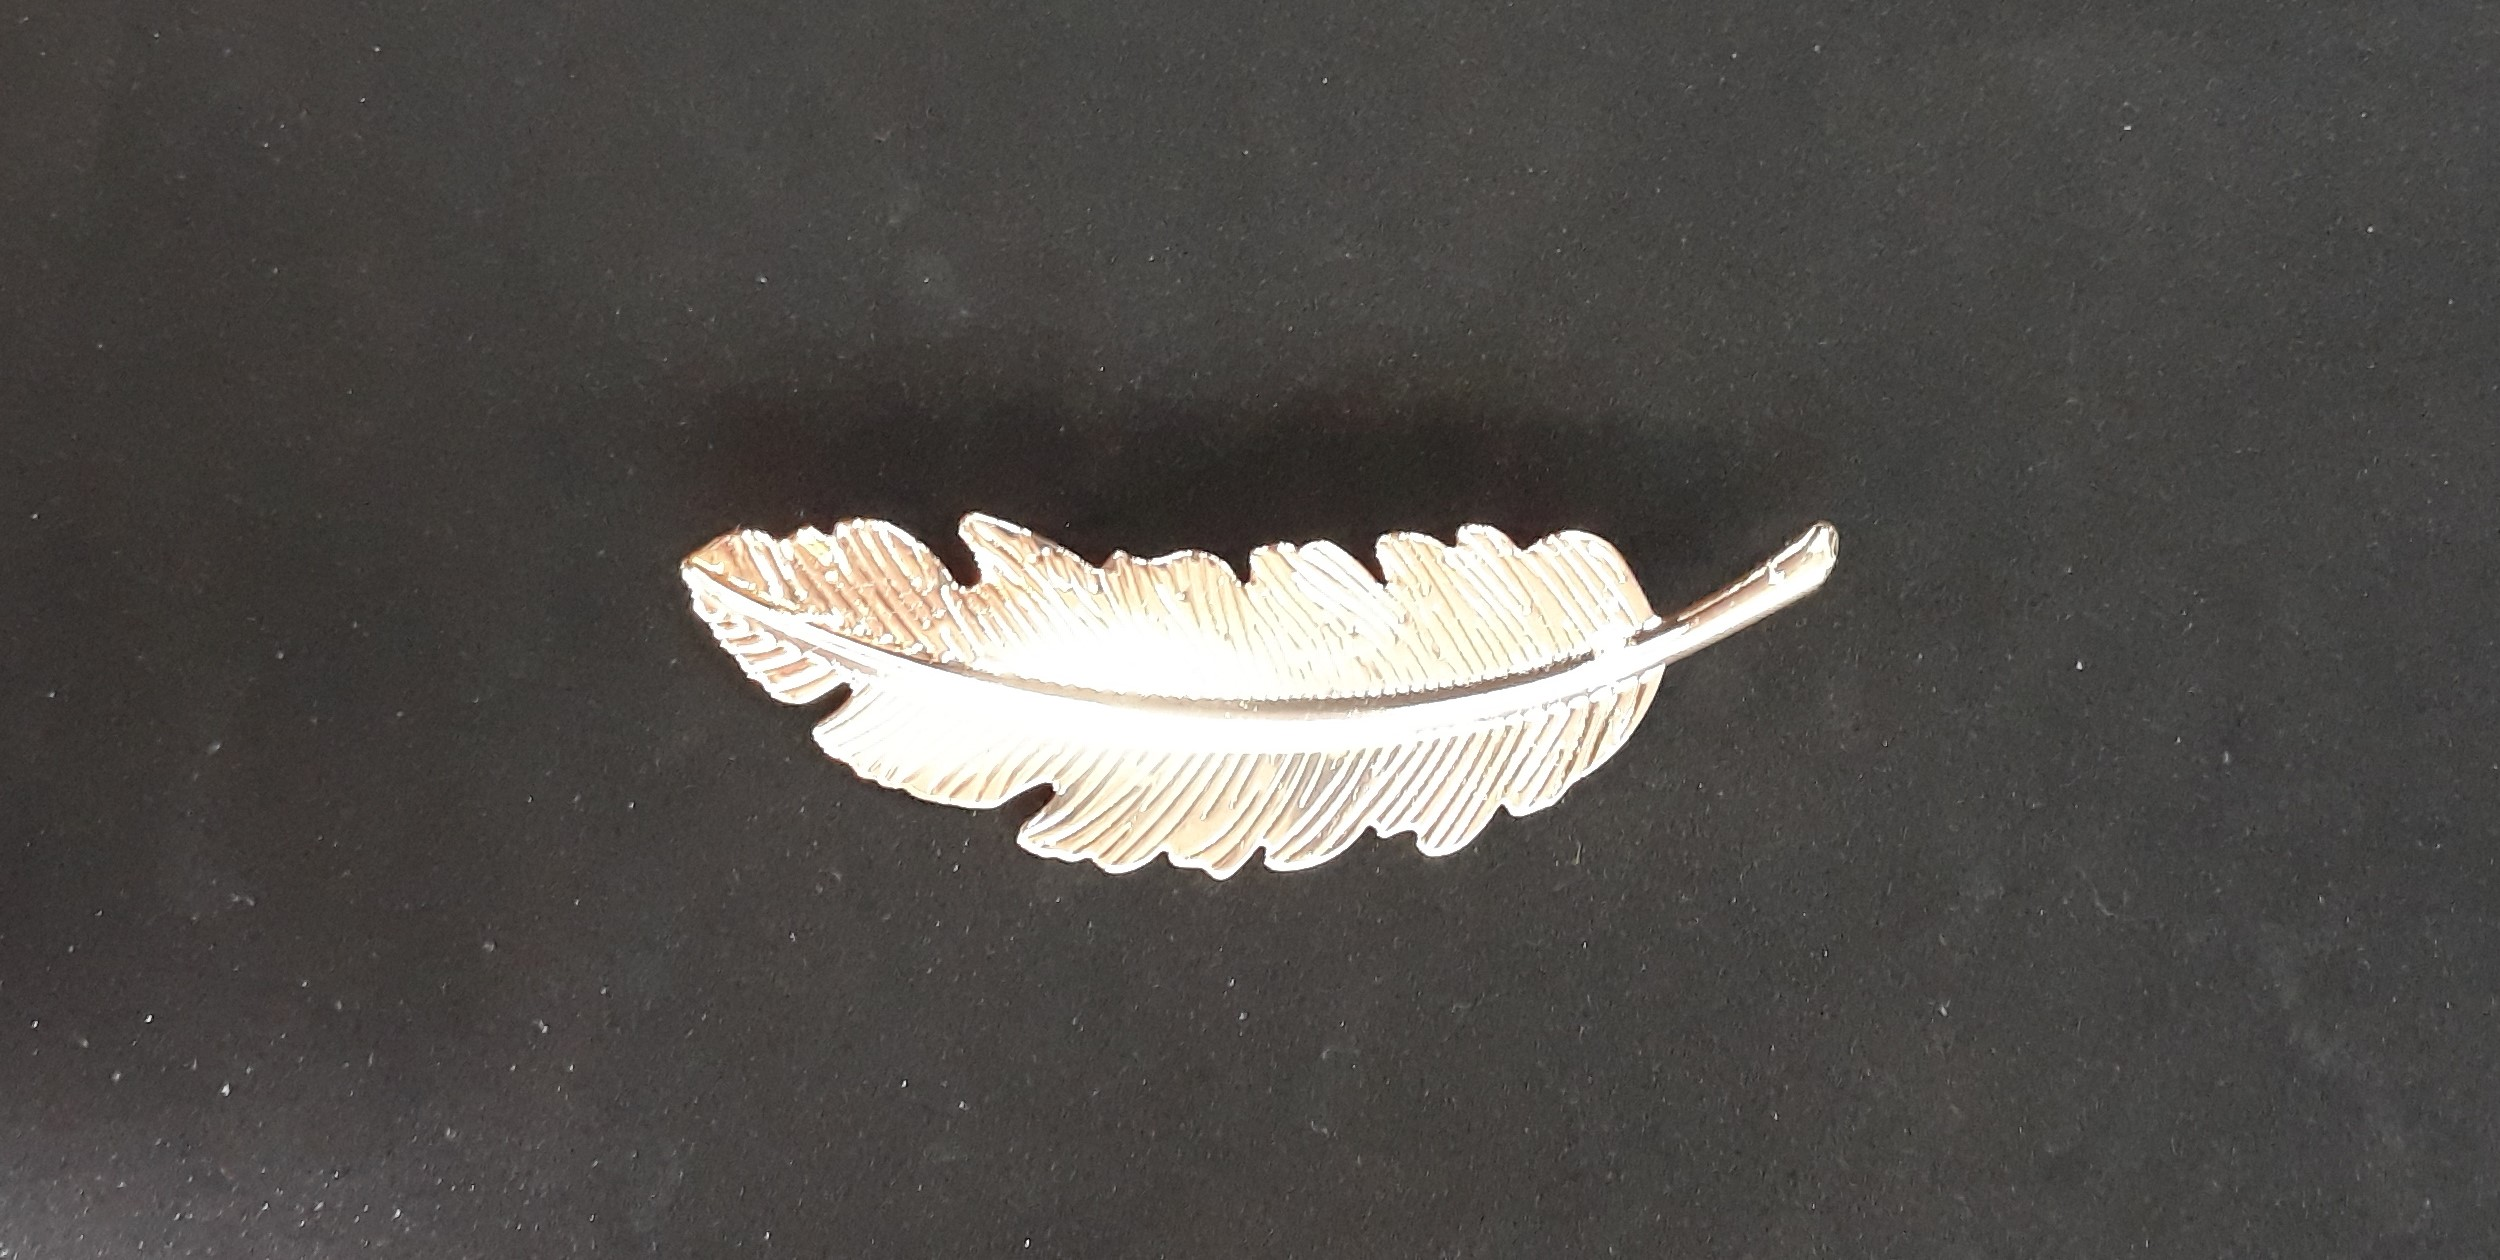 barrette fantaisie plume or.jpg